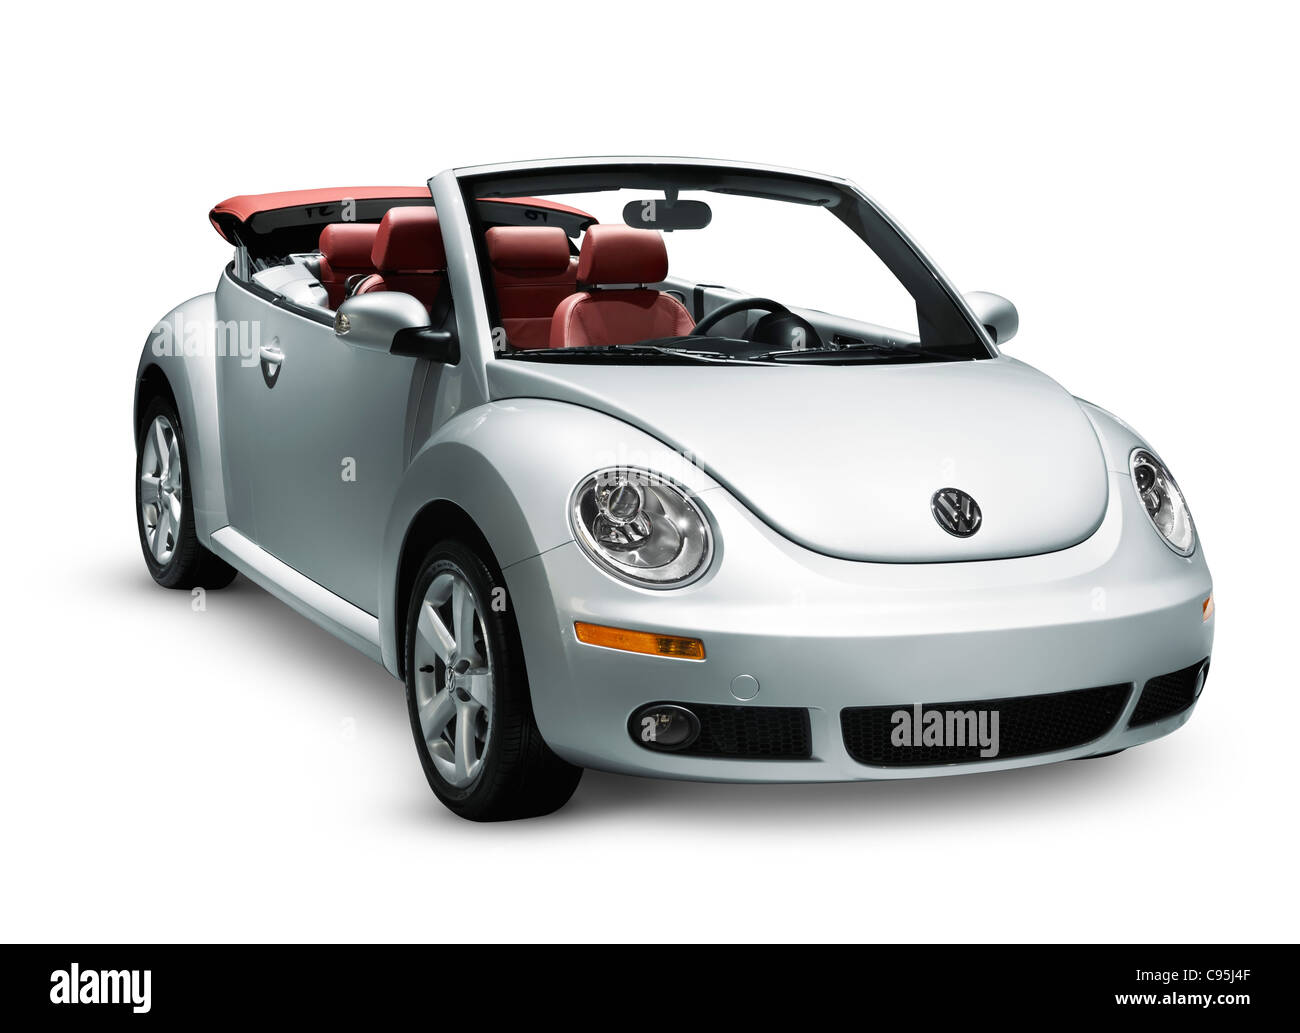 silver 2009 new volkswagen beetle convertible isolated on white stock photo royalty free image. Black Bedroom Furniture Sets. Home Design Ideas